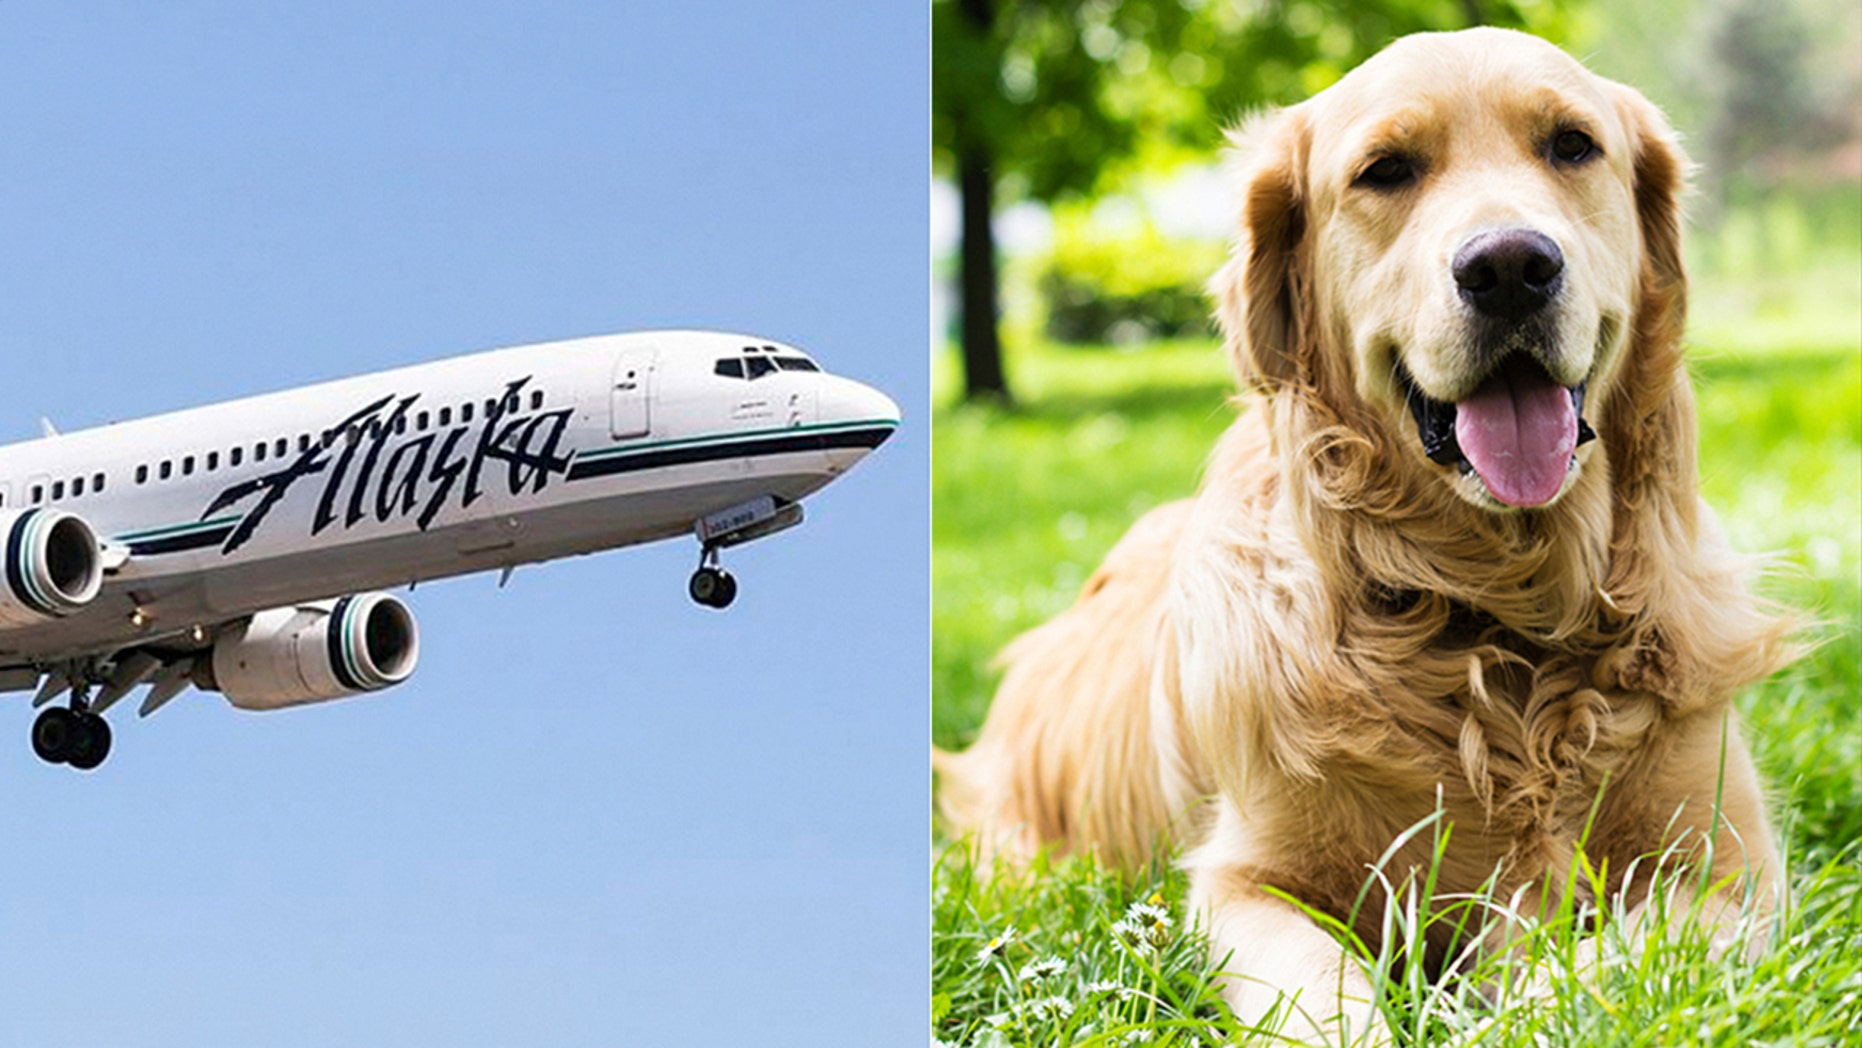 alaska airlines dog policy